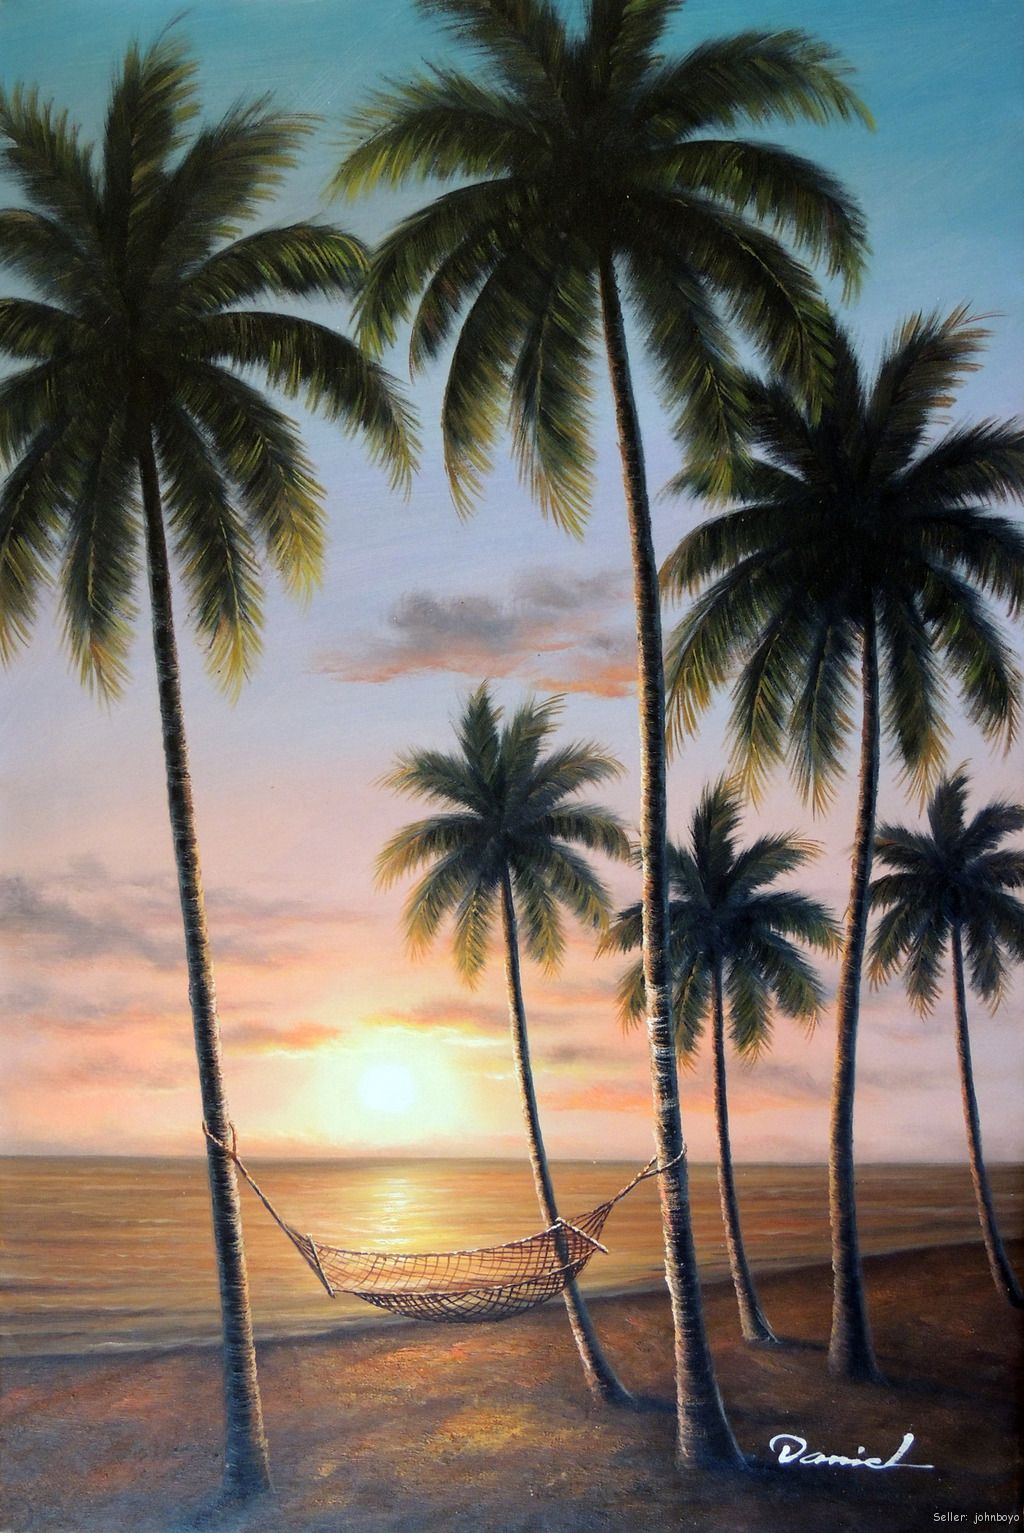 Hawaii tahiti sunset beach hammock palm trees stretched for Painting palm trees